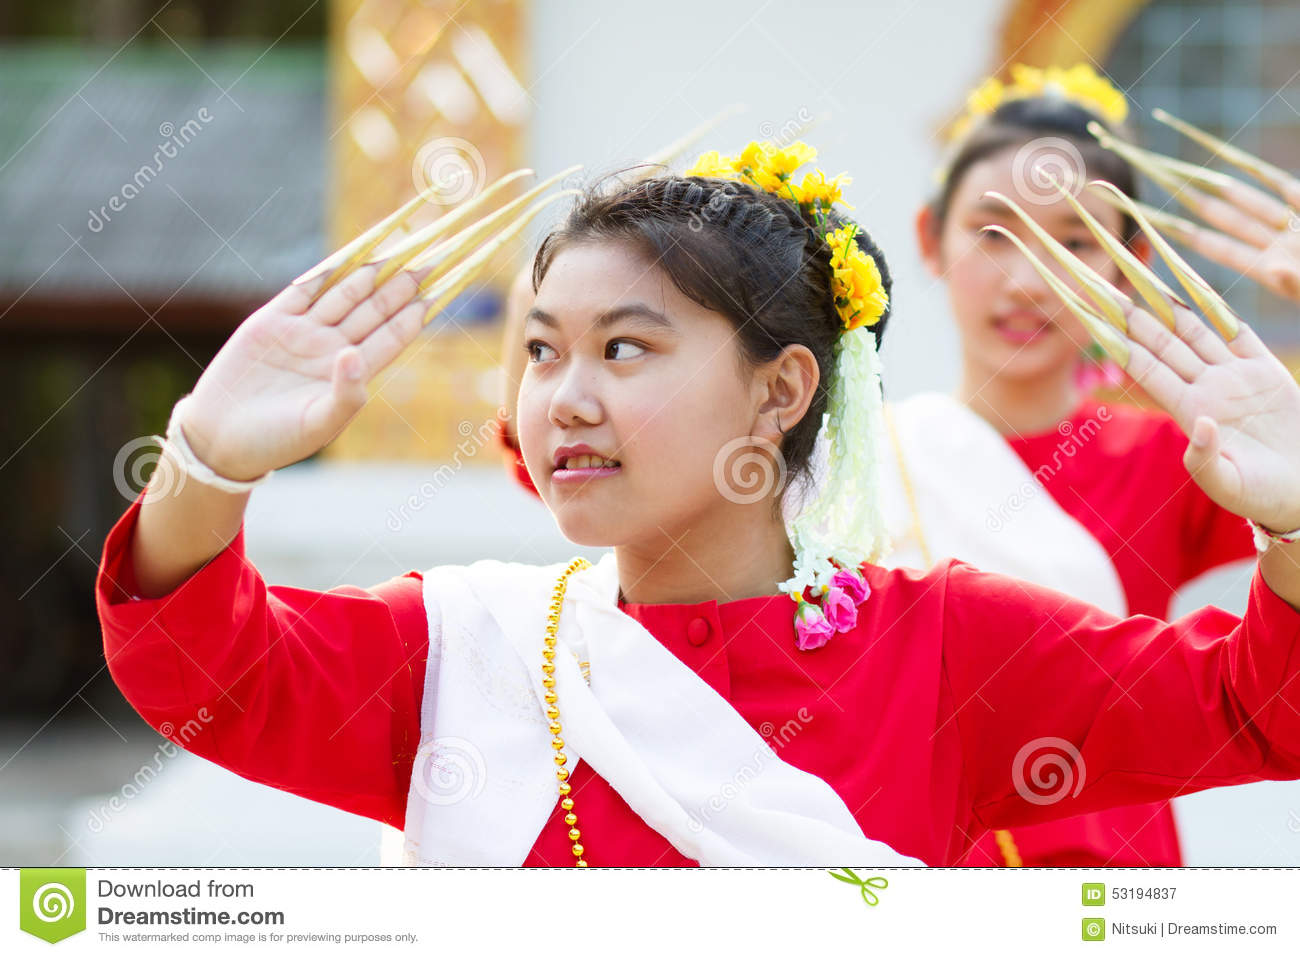 Girls in Thai traditional costume